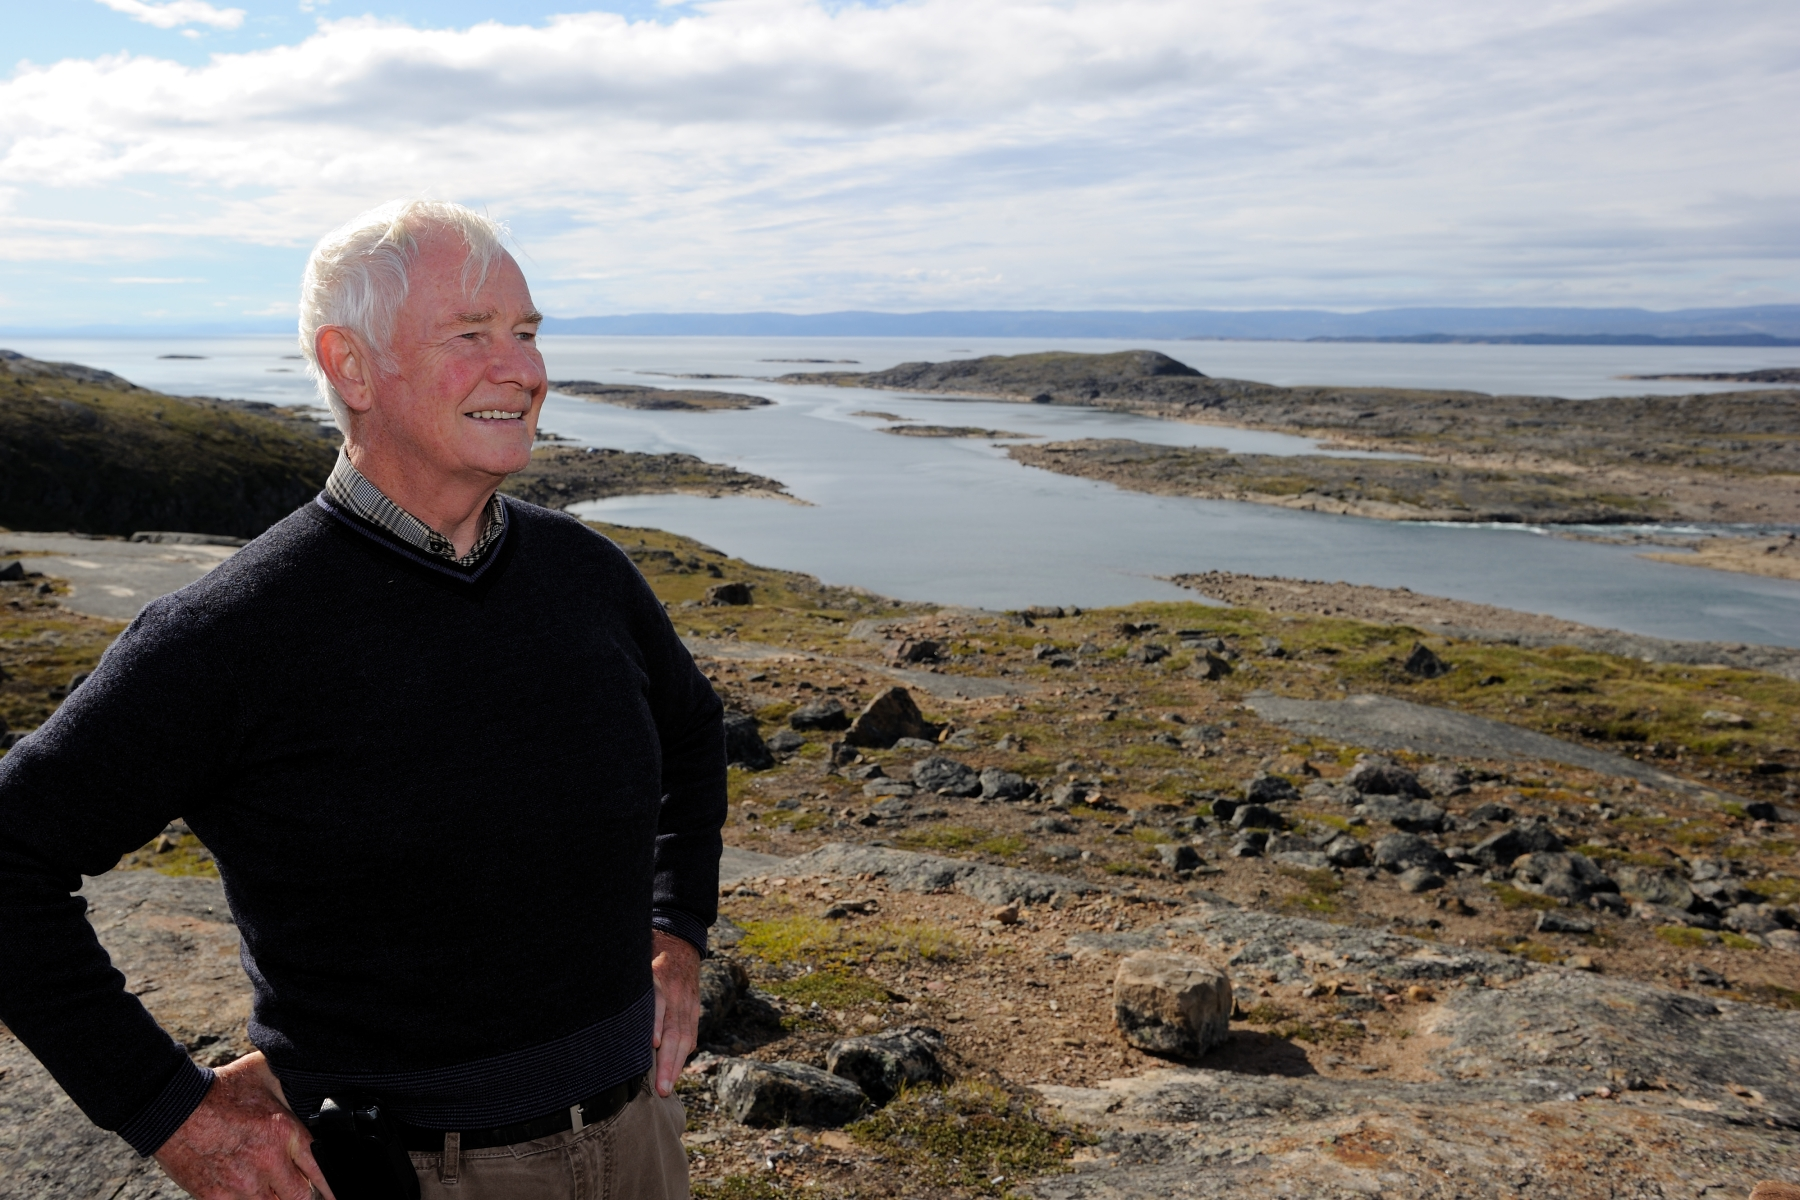 On the third day of his official visit to Nunavut, the Governor General spent some time hiking in the Sylvia Grinnell Territorial Park.